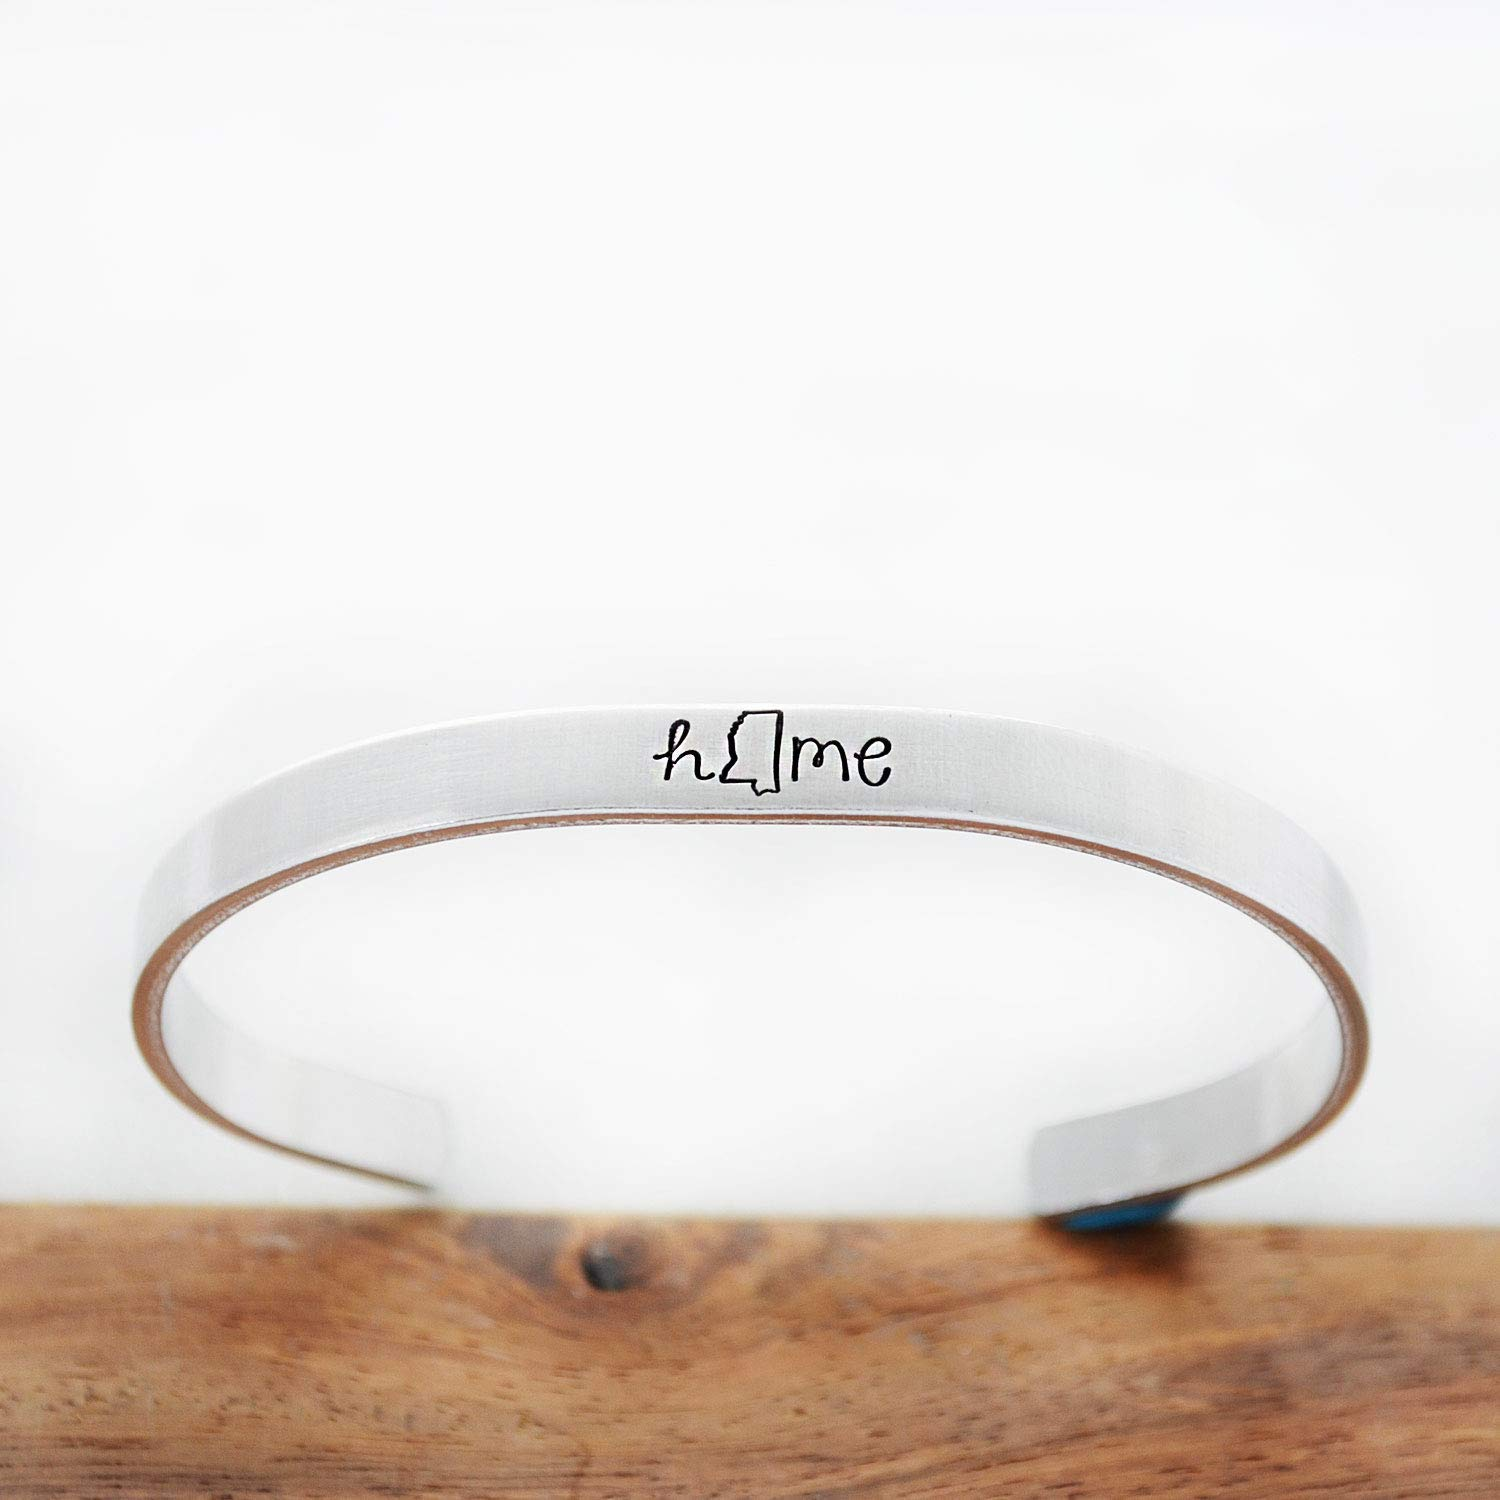 Mississippi State MS Home Cuff Bracelet Hand Stamped Jewelry Long Distance Relationship LDR Gift for Best Friend Daughter Graduation